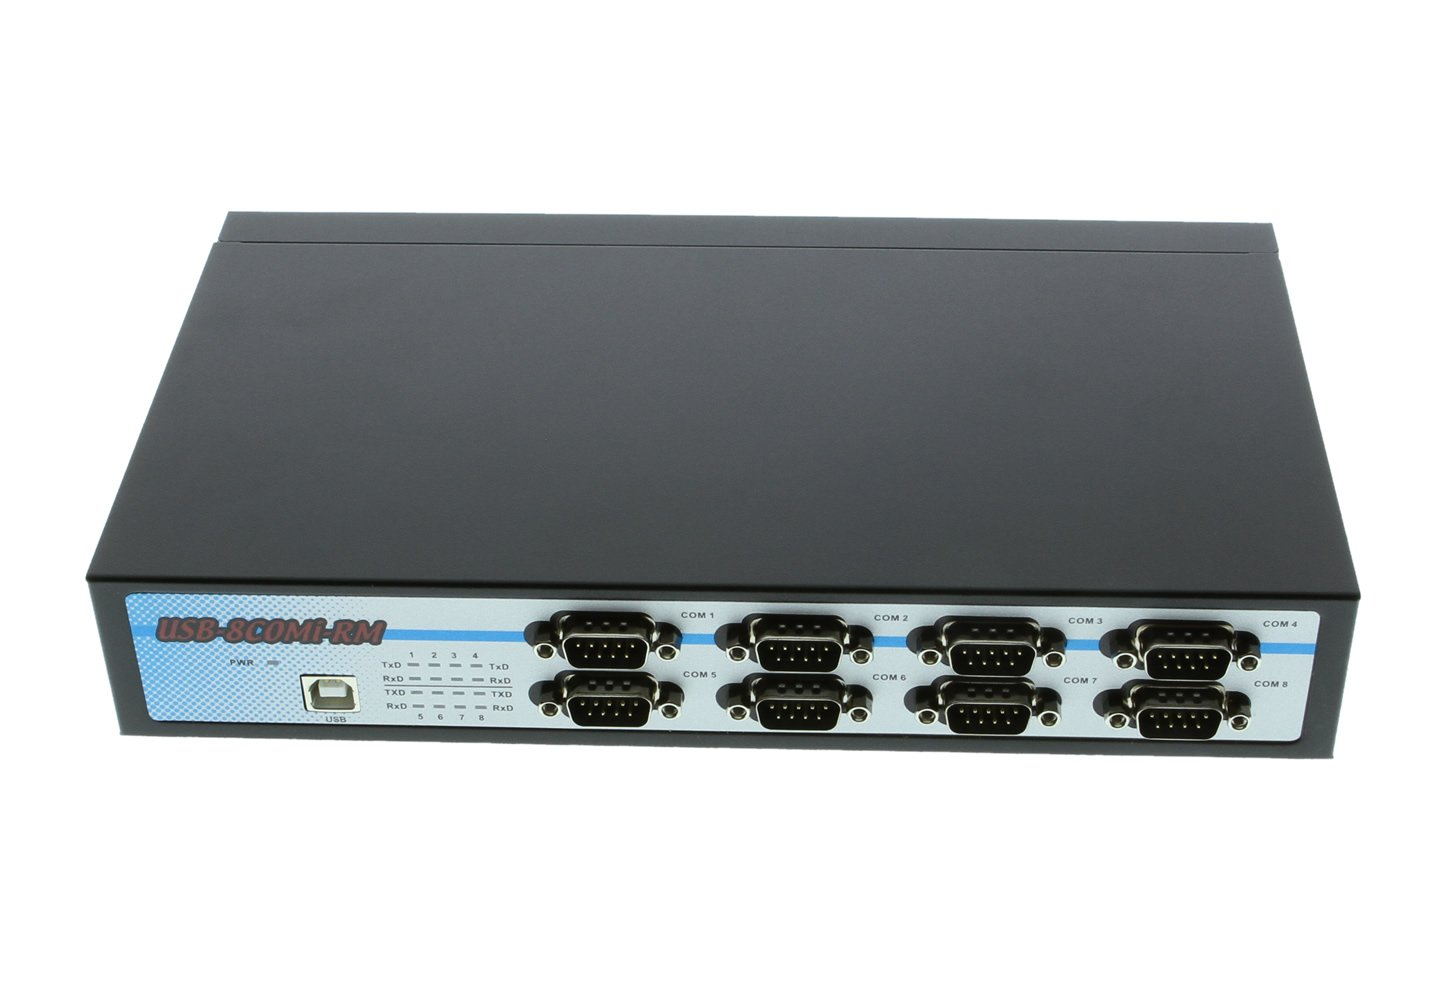 SerialGear 8 Port USB to Octal RS-232/422/485 Adapter by Coolgear